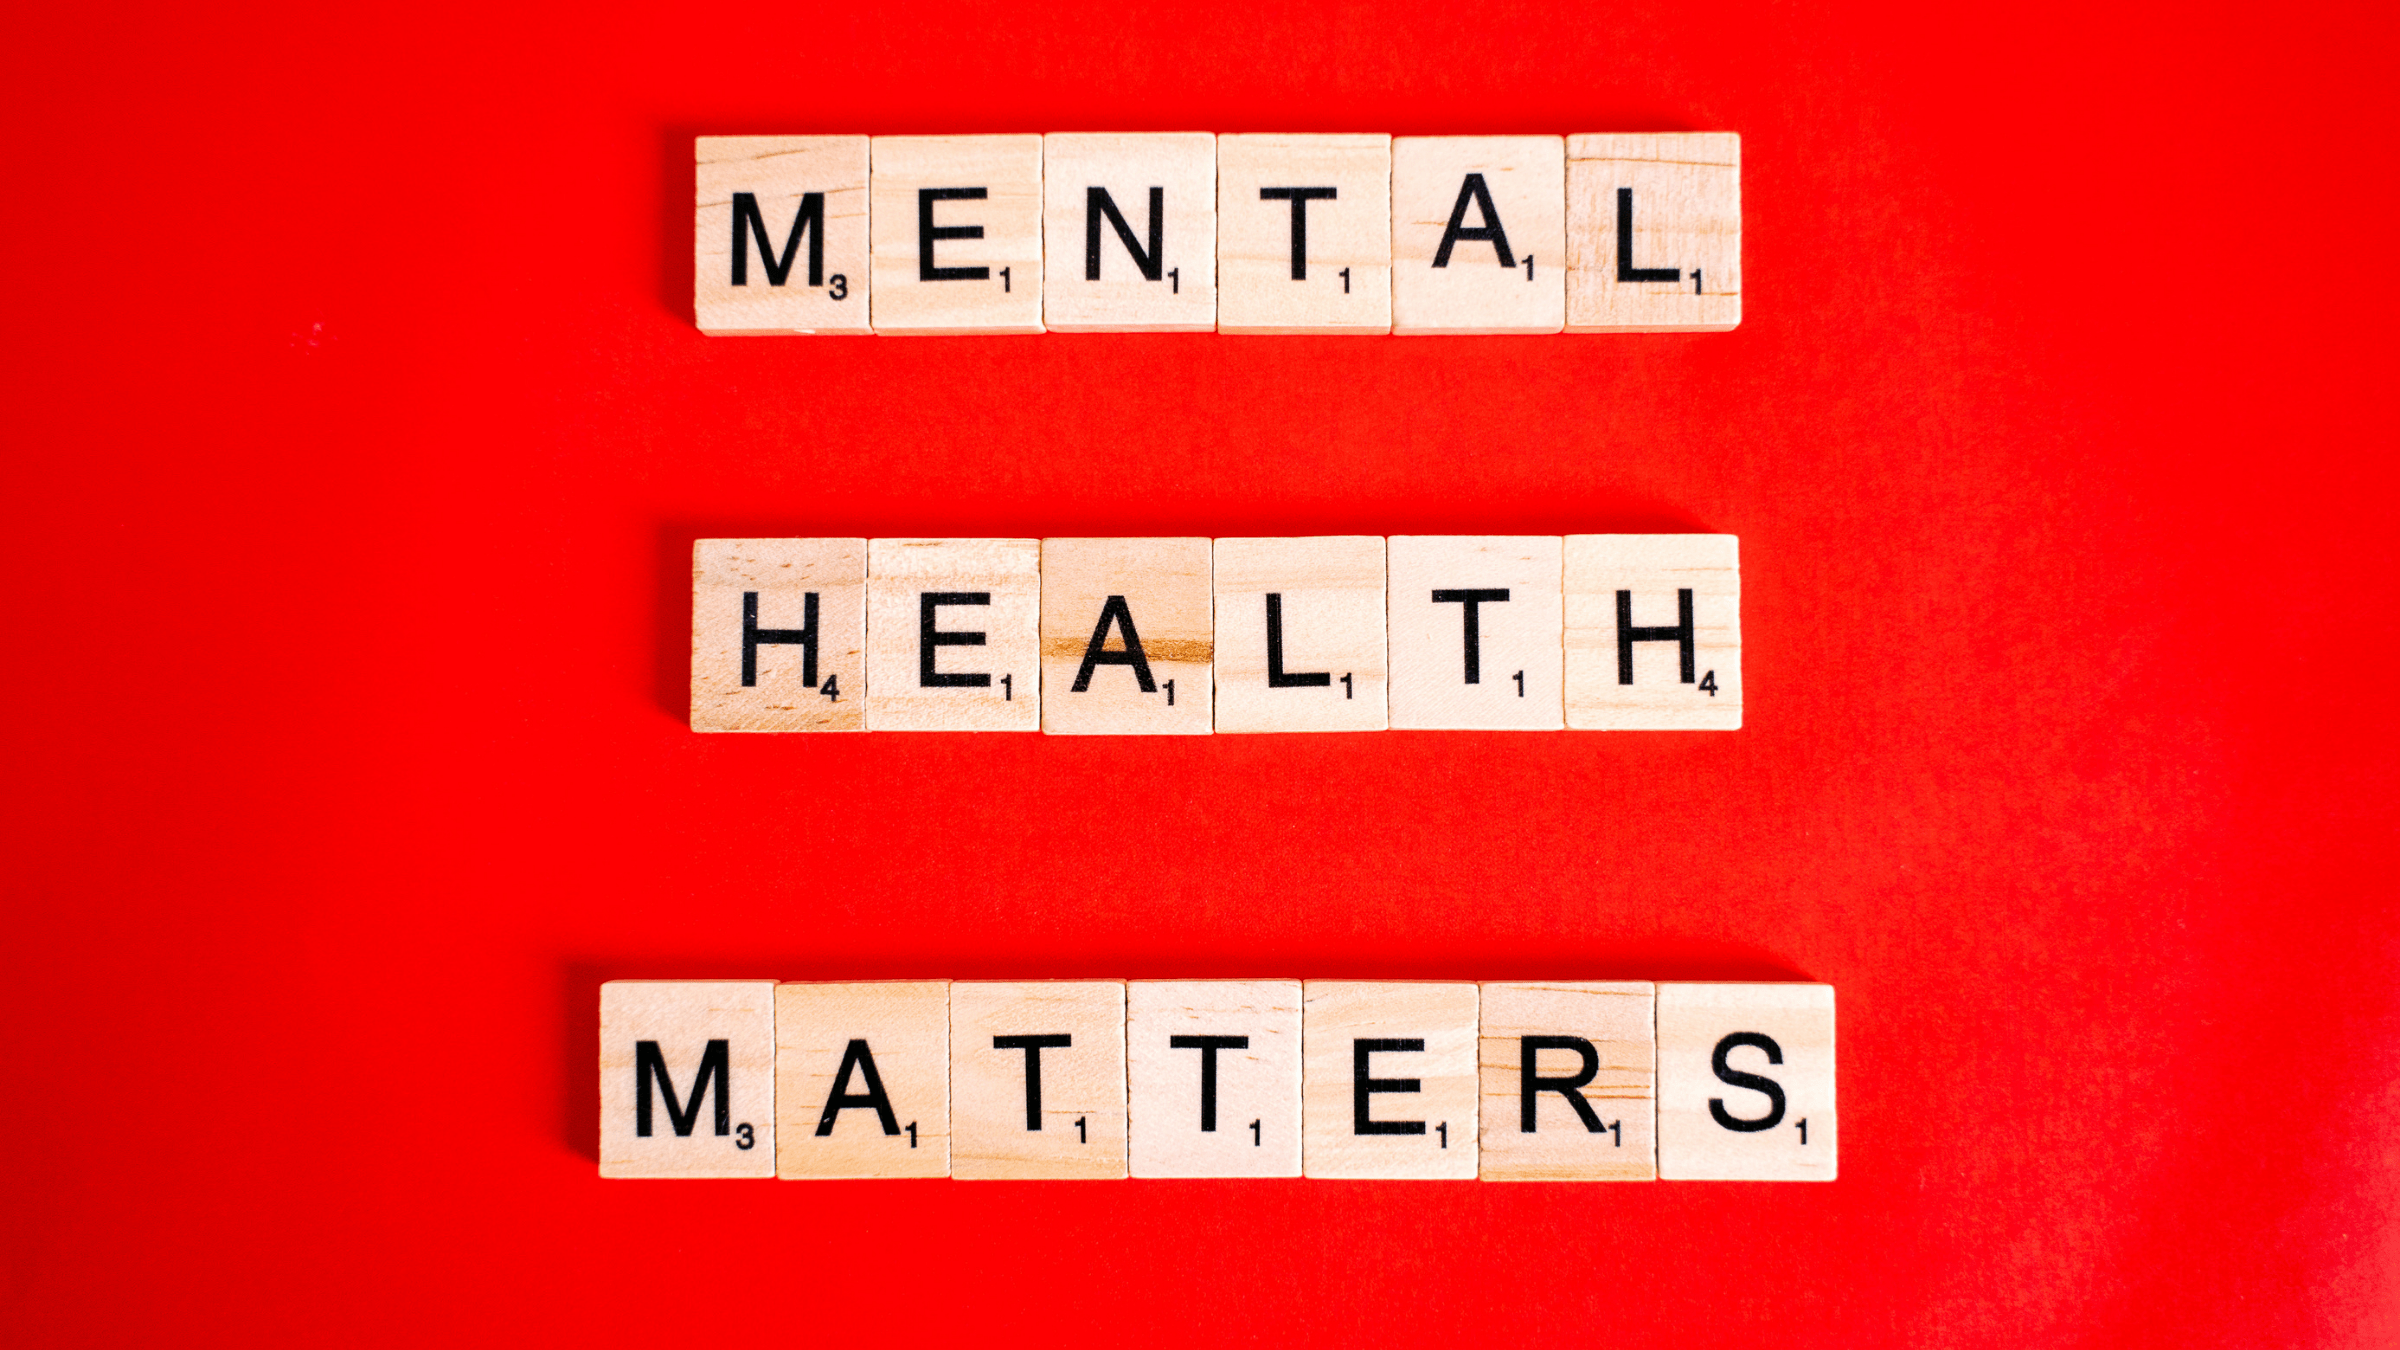 Mental Health Matters in wooden scrabble letters on a red background